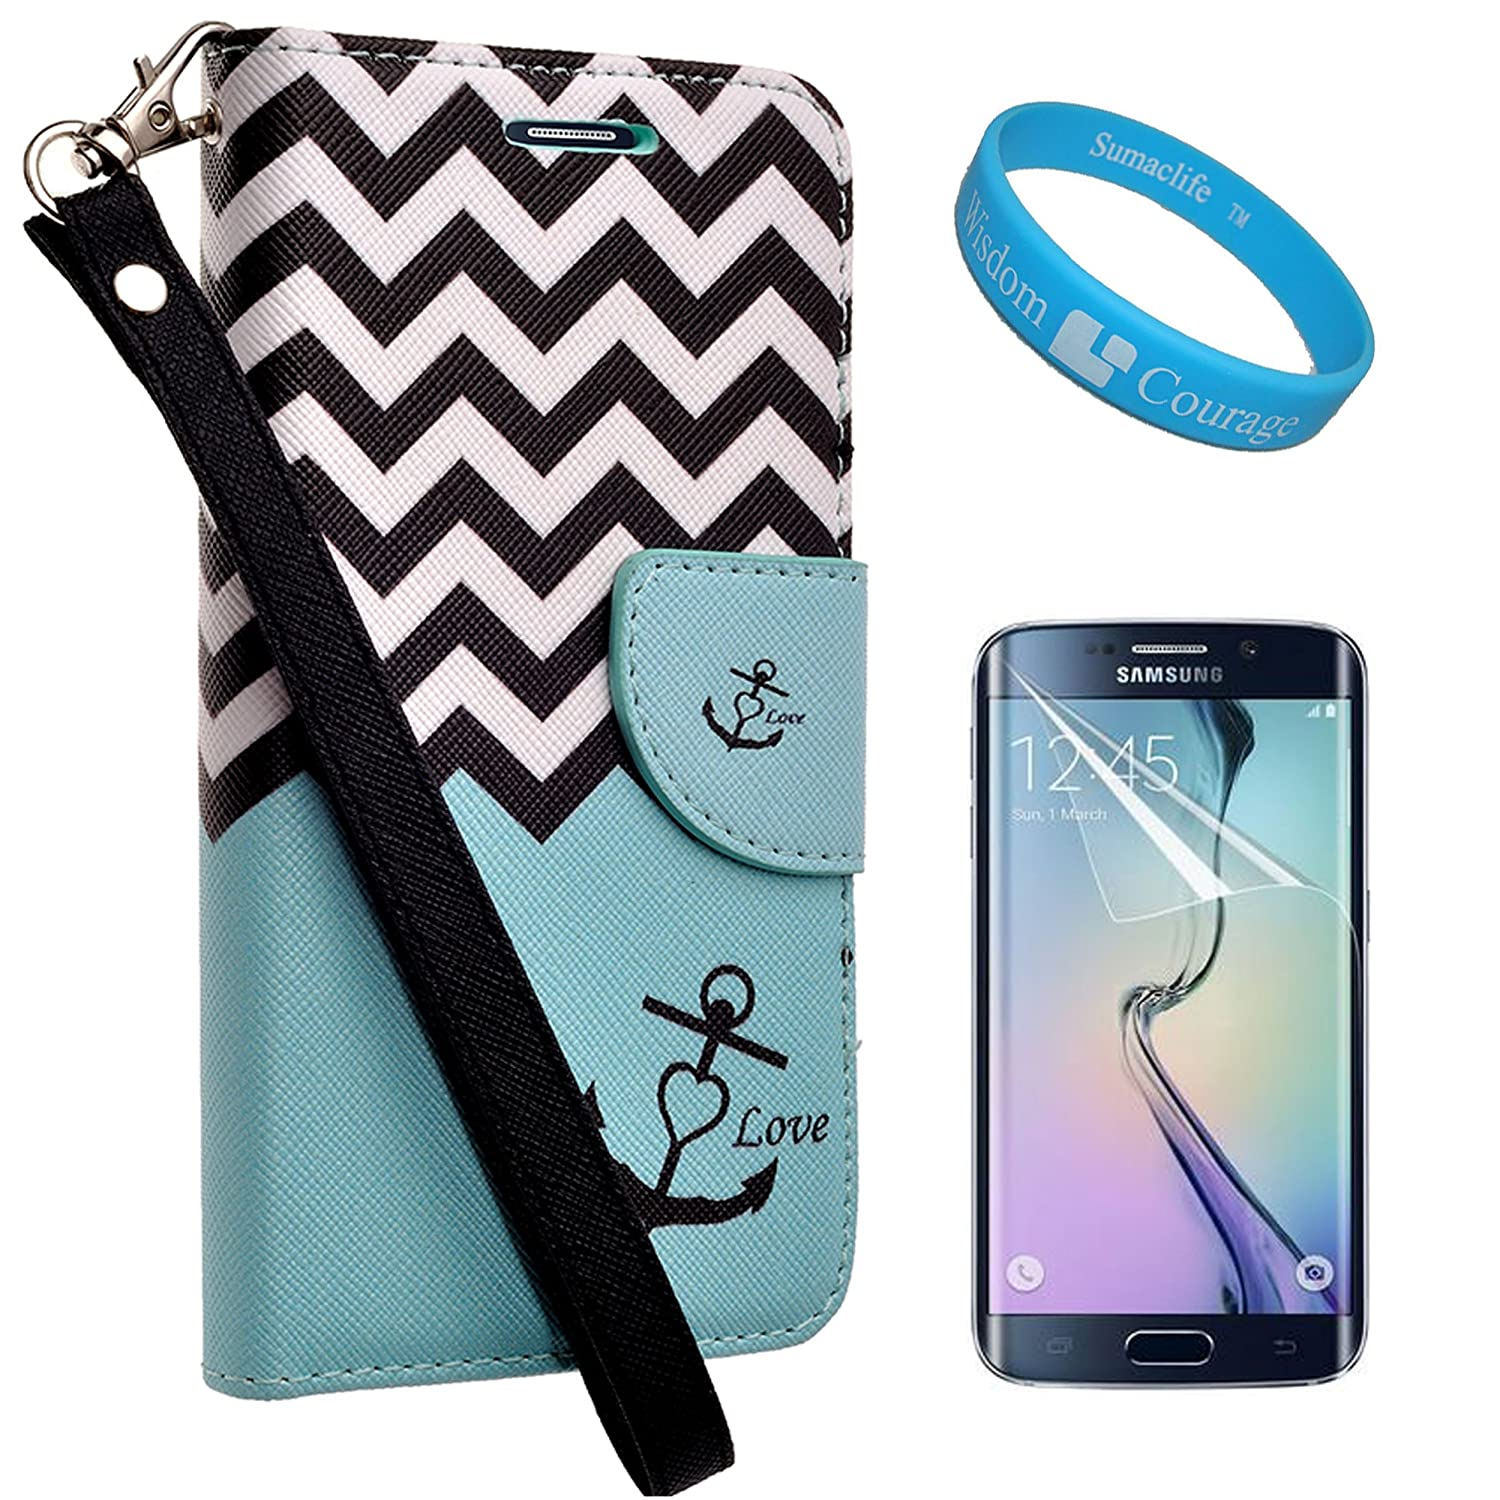 Stylish Teal Anchor Wallet Standing Case w/Hand Strap for Samsung Galaxy S6 Edge (2015) + Screen Protector + SumacLife TM Wristband